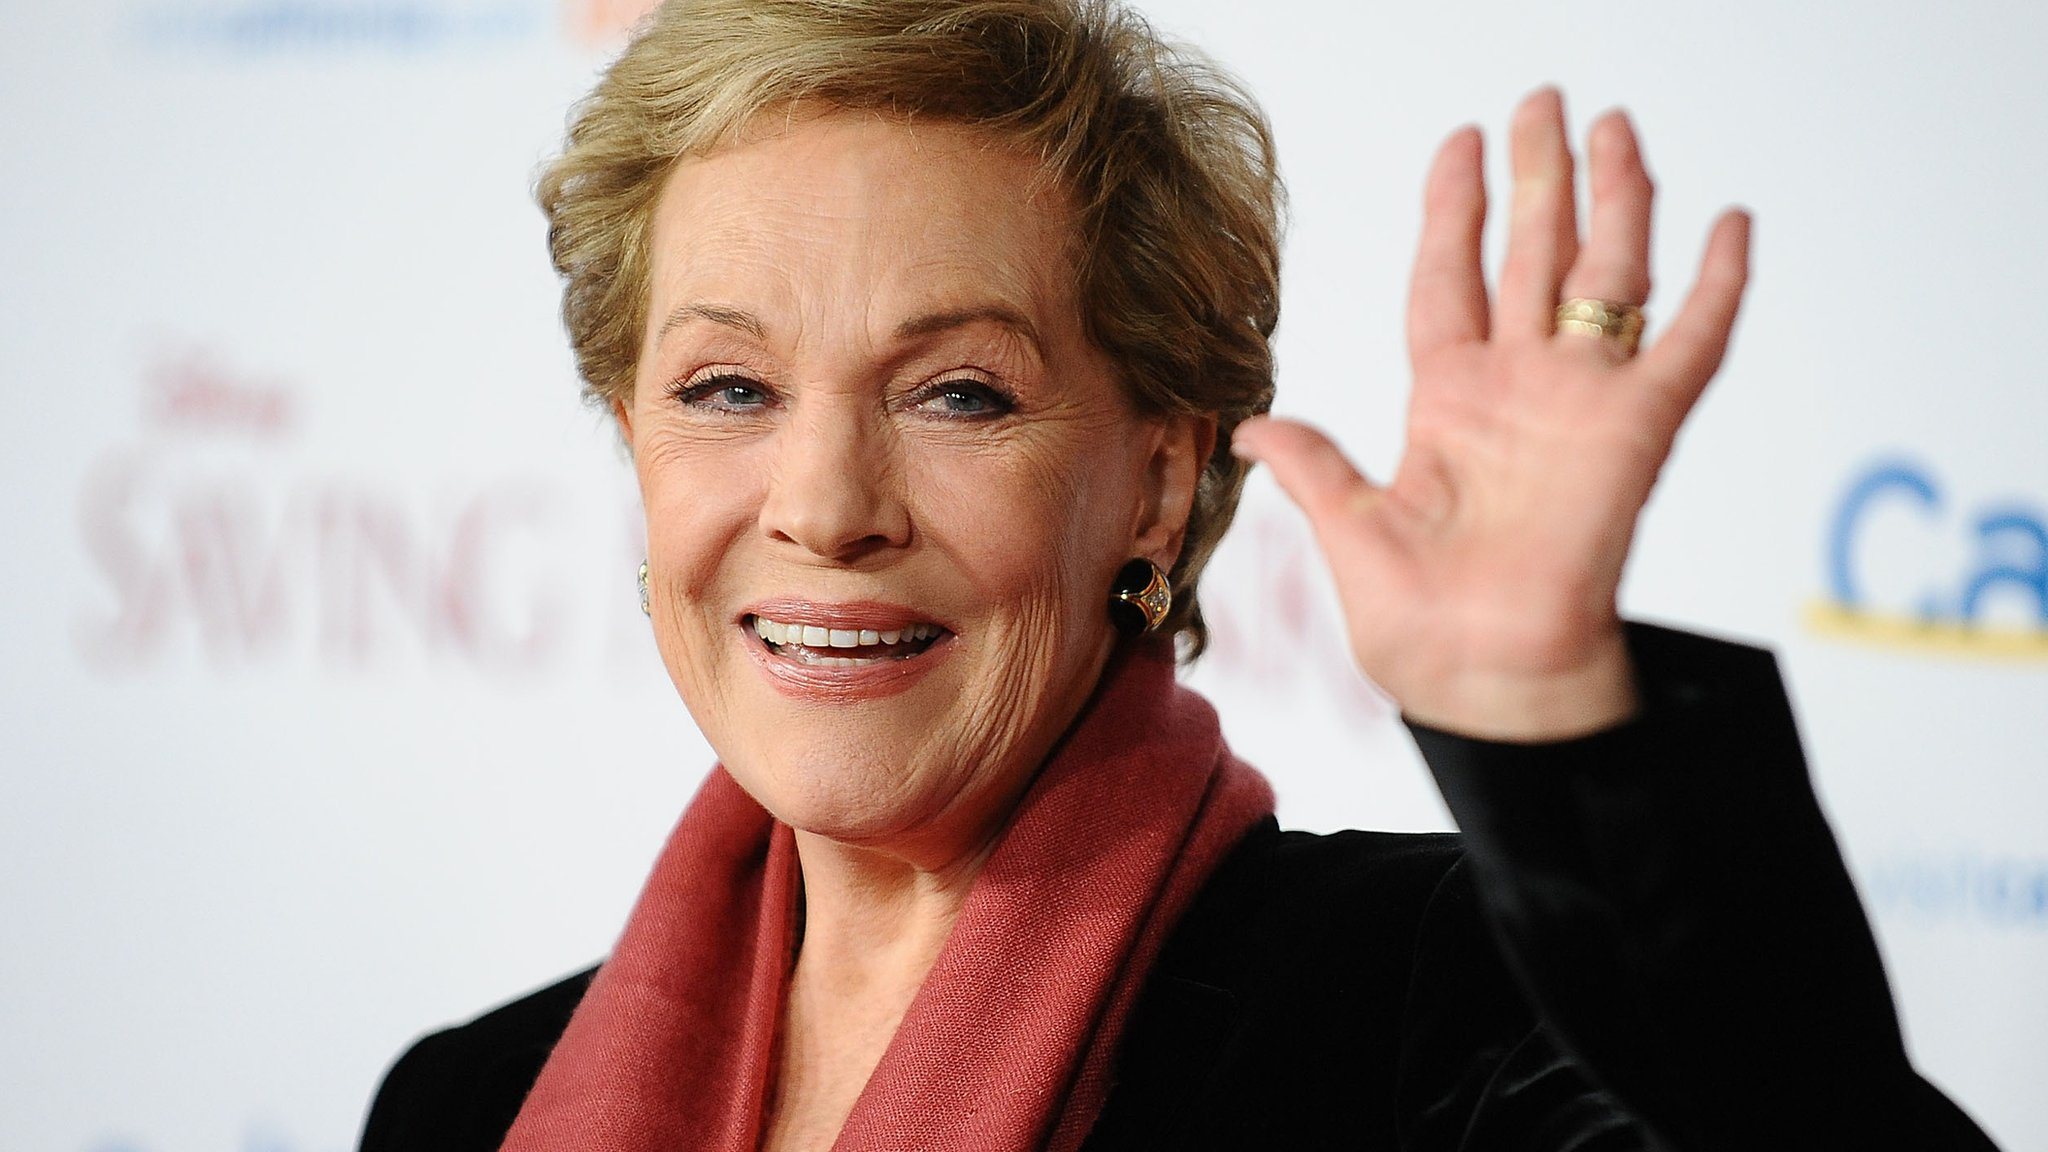 BBC News - Julie Andrews to bring memoirs to life in one-off show